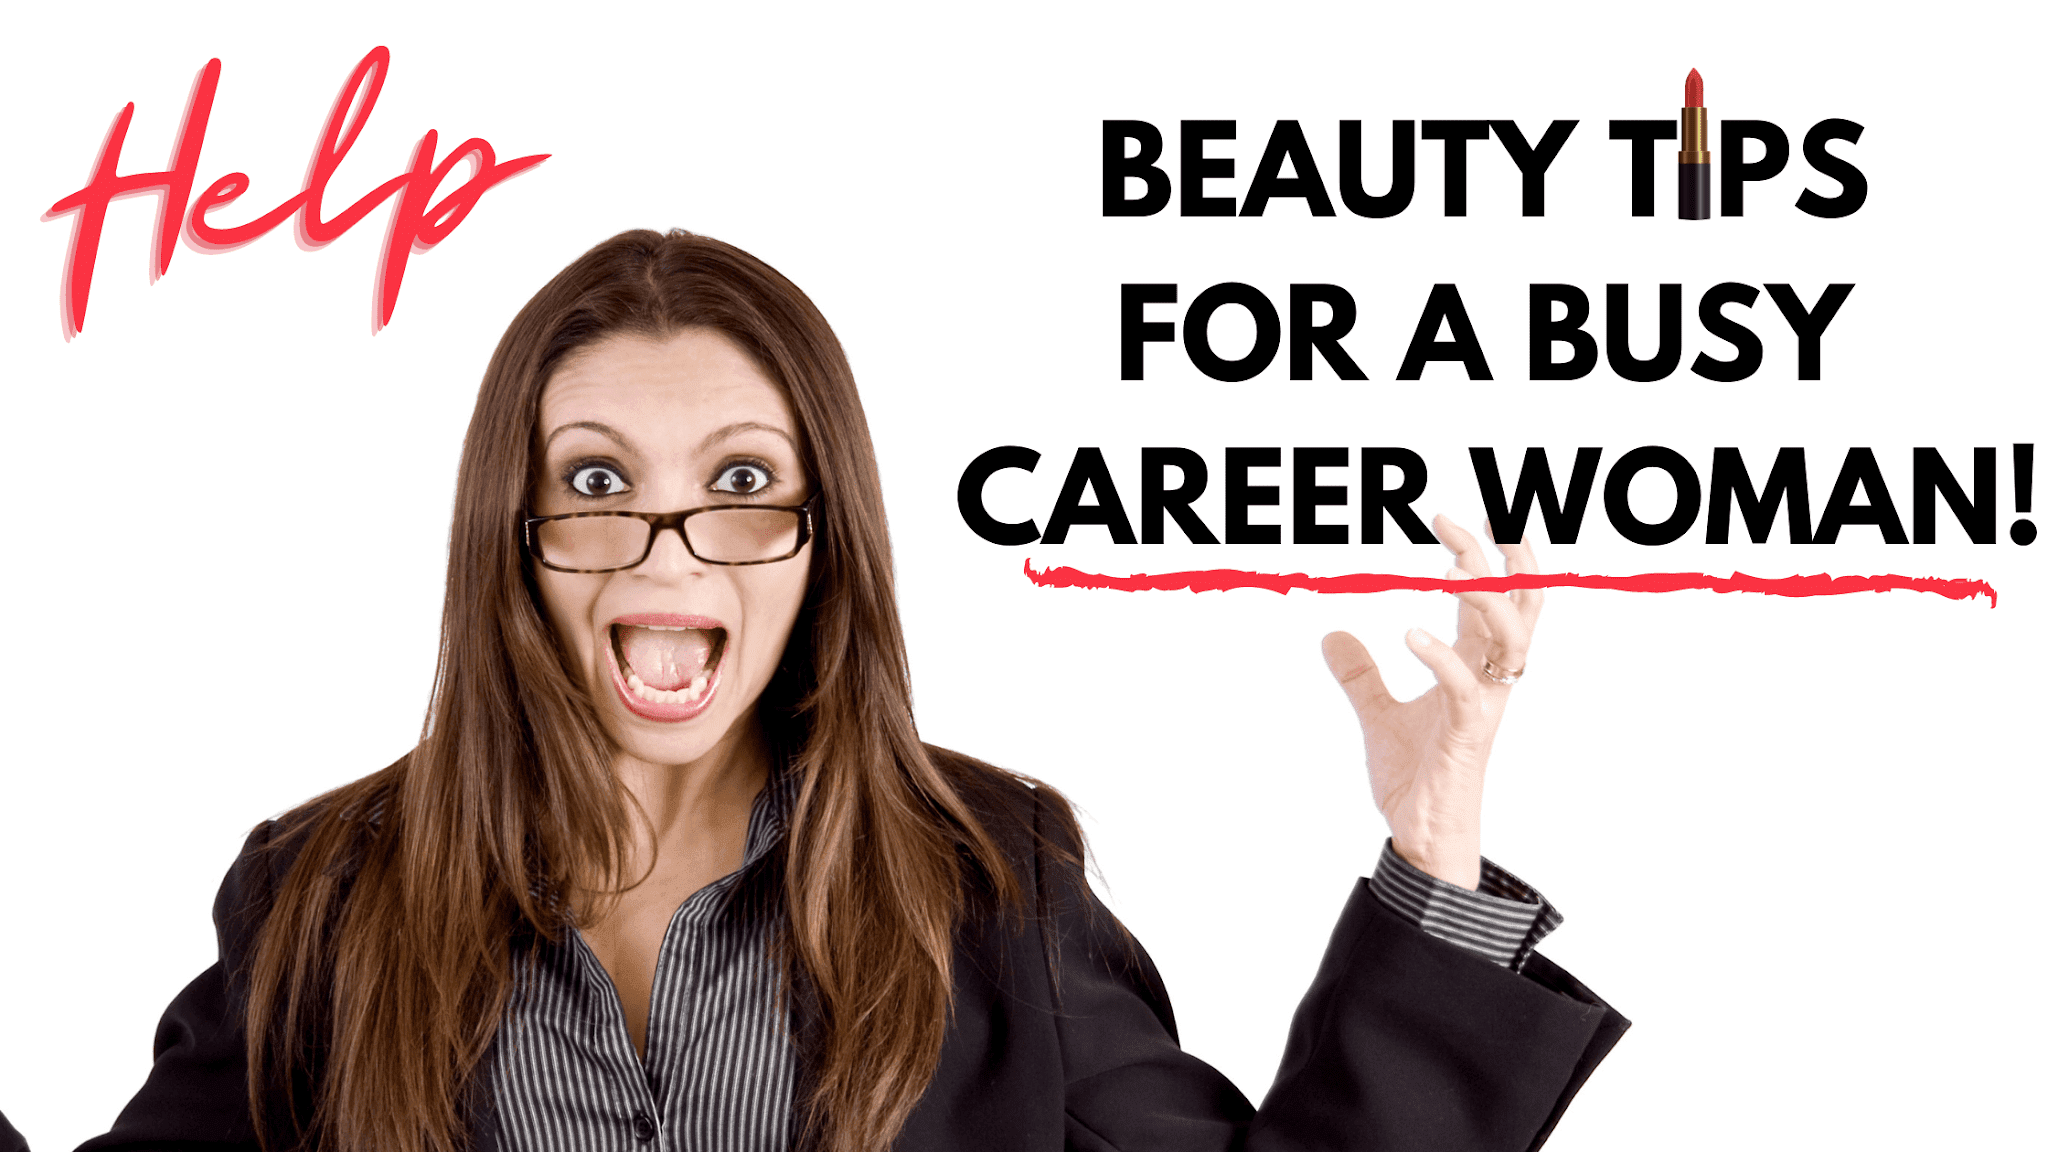 Top Beauty Tips For A Busy Career Woman By Barbies Beauty Bits